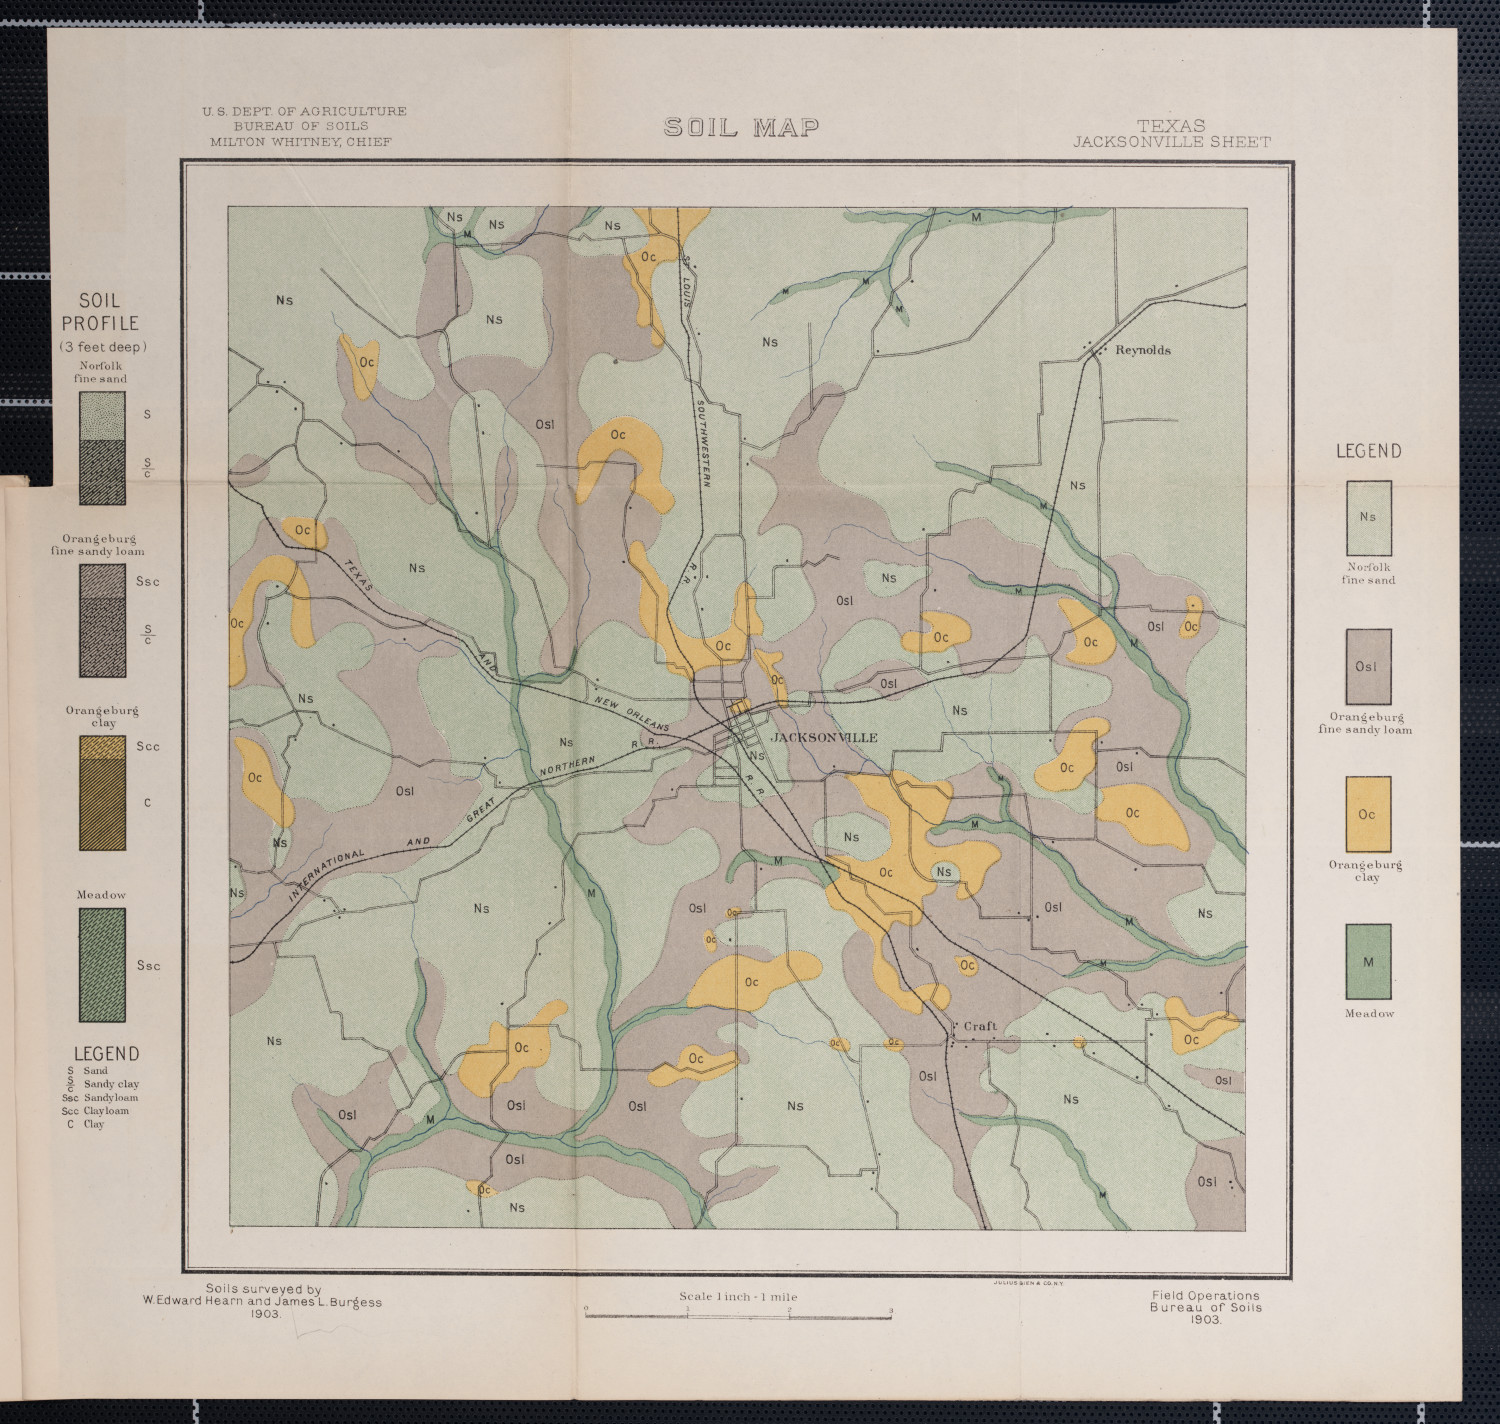 Soil map, Texas, Jacksonville sheet                                                                                                      [Sequence #]: 1 of 1